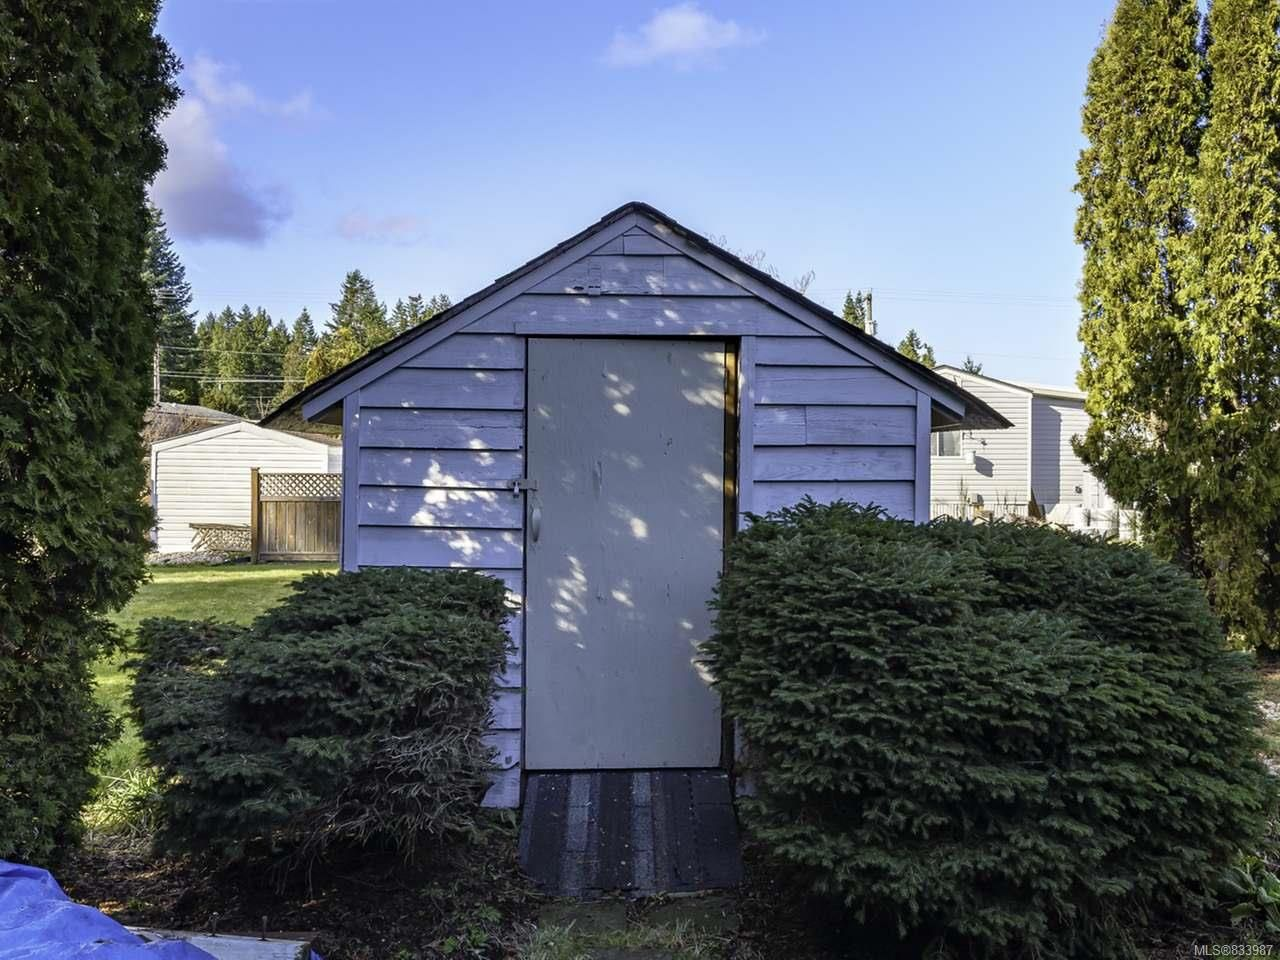 Photo 35: Photos: 64 390 Cowichan Ave in COURTENAY: CV Courtenay East Manufactured Home for sale (Comox Valley)  : MLS®# 833987